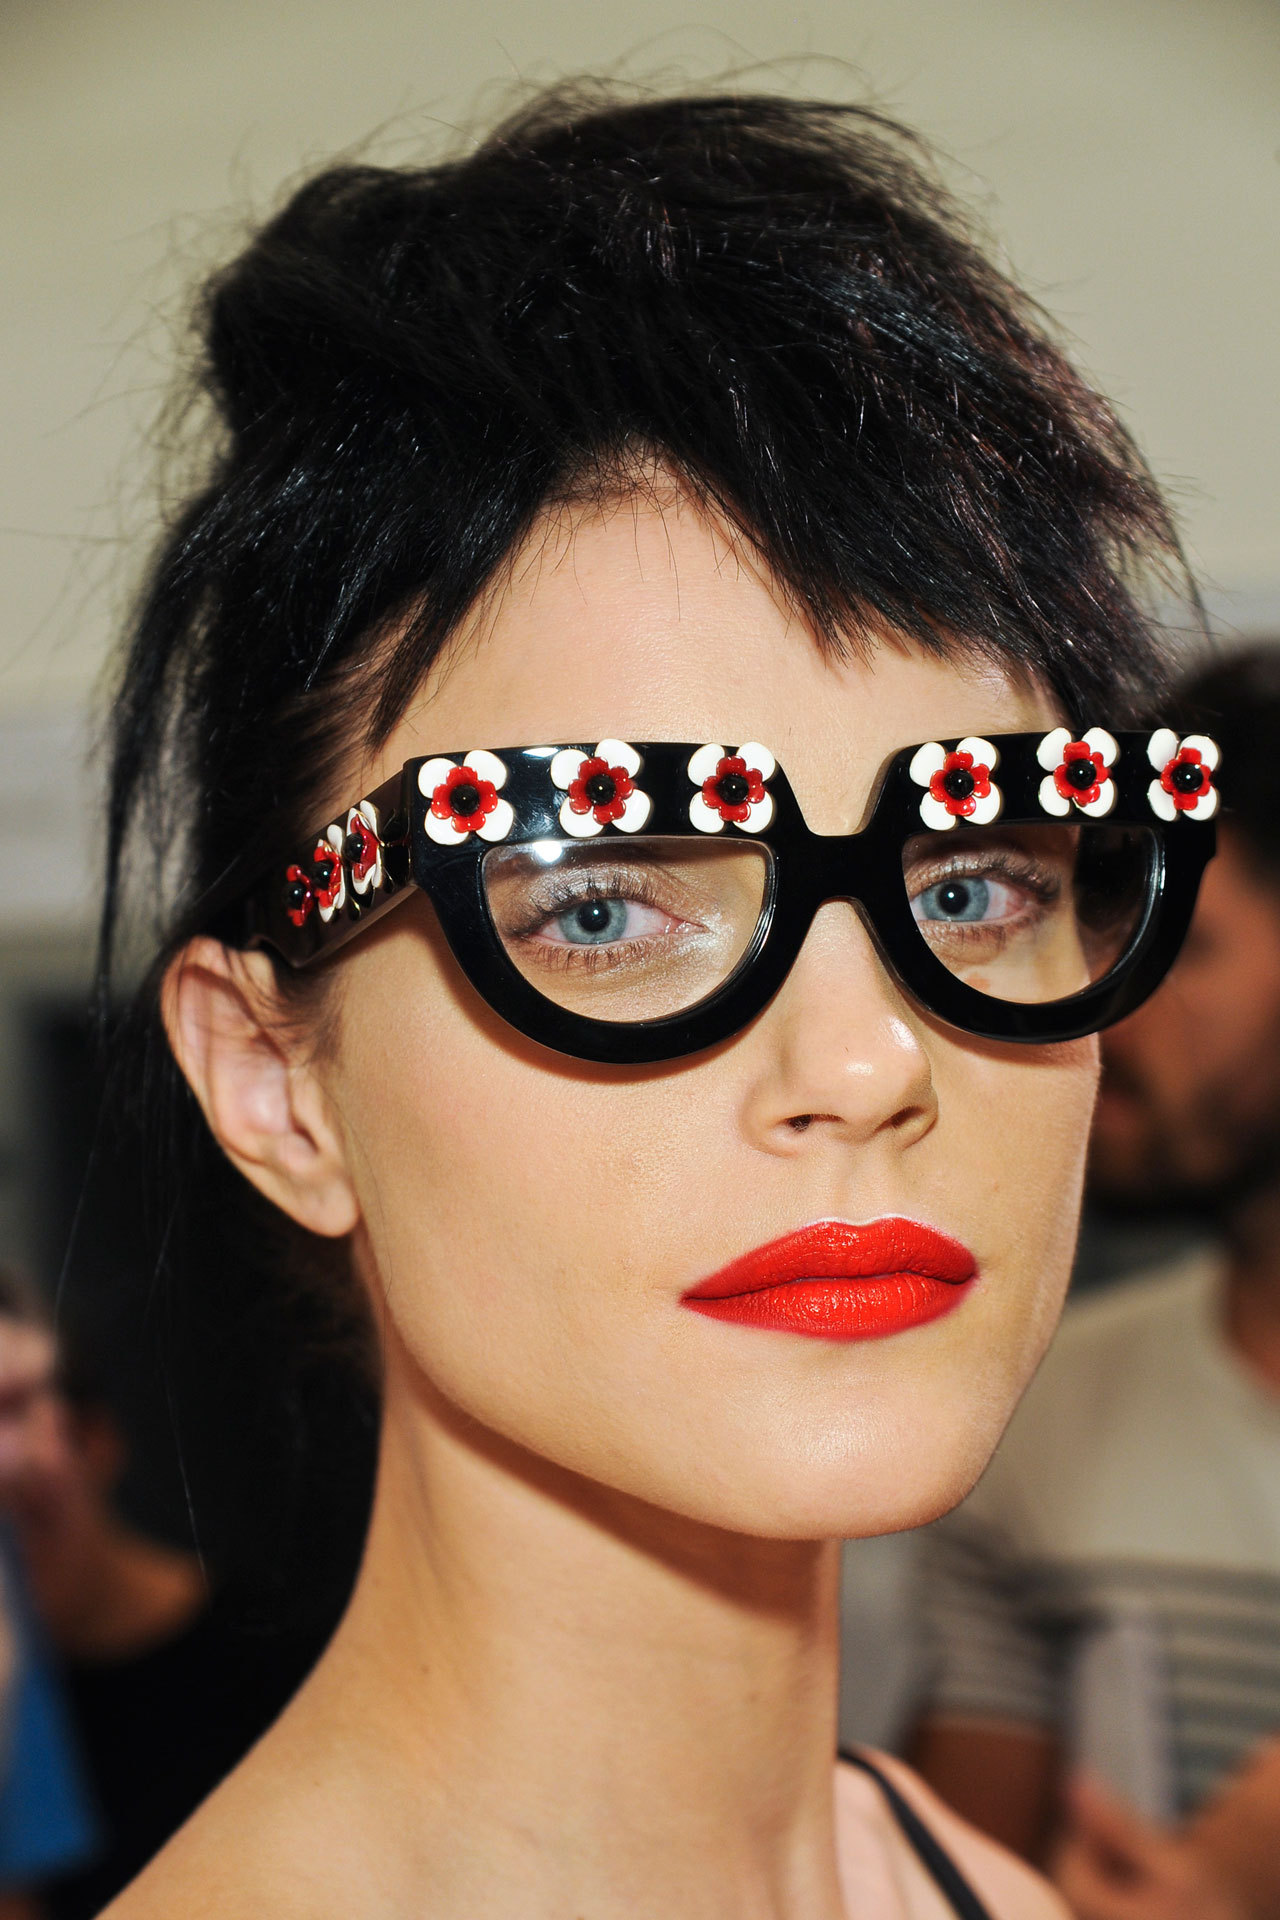 Jessica Stam backstage at the Prada Spring/Summer 2013 show during MFW, September 20th